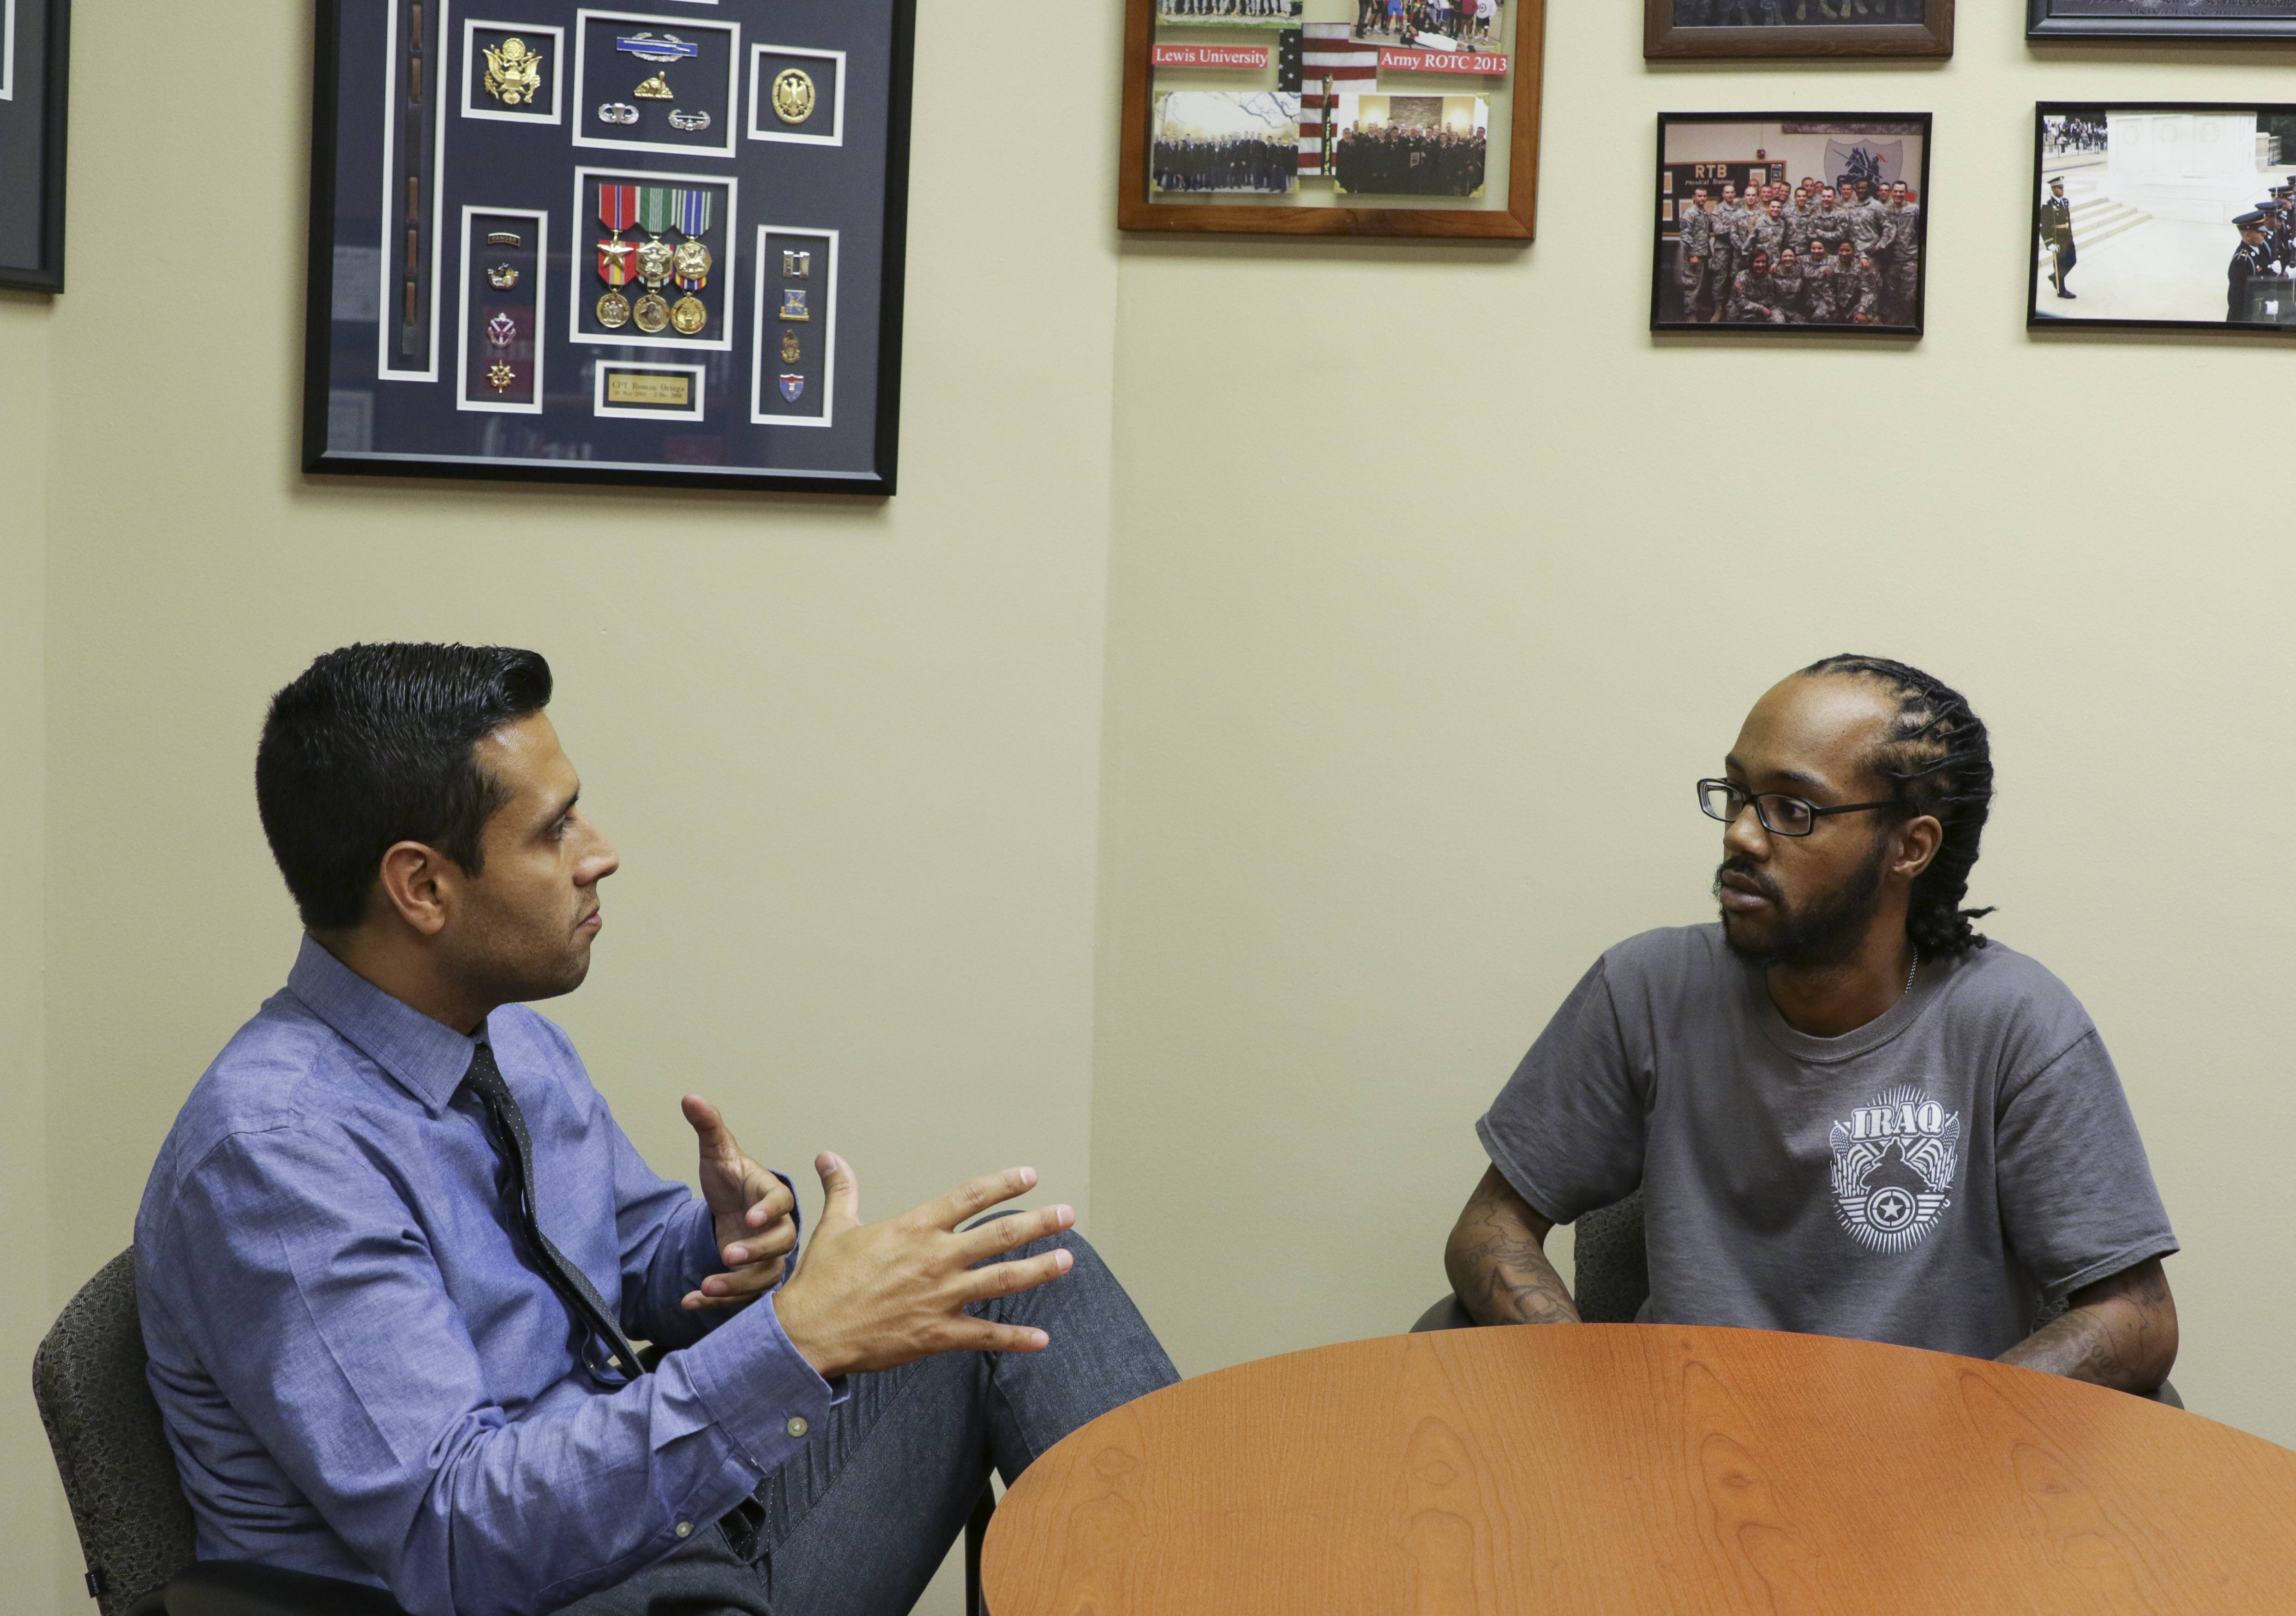 Darian Blanks, right, an Iraq war veteran, talks with Roman Ortega Jr, director of Veteran's Affairs at Lewis University in Romeoville. Blanks twice tried to commit suicide but has turned his life around and now wants to counsel other veterans.